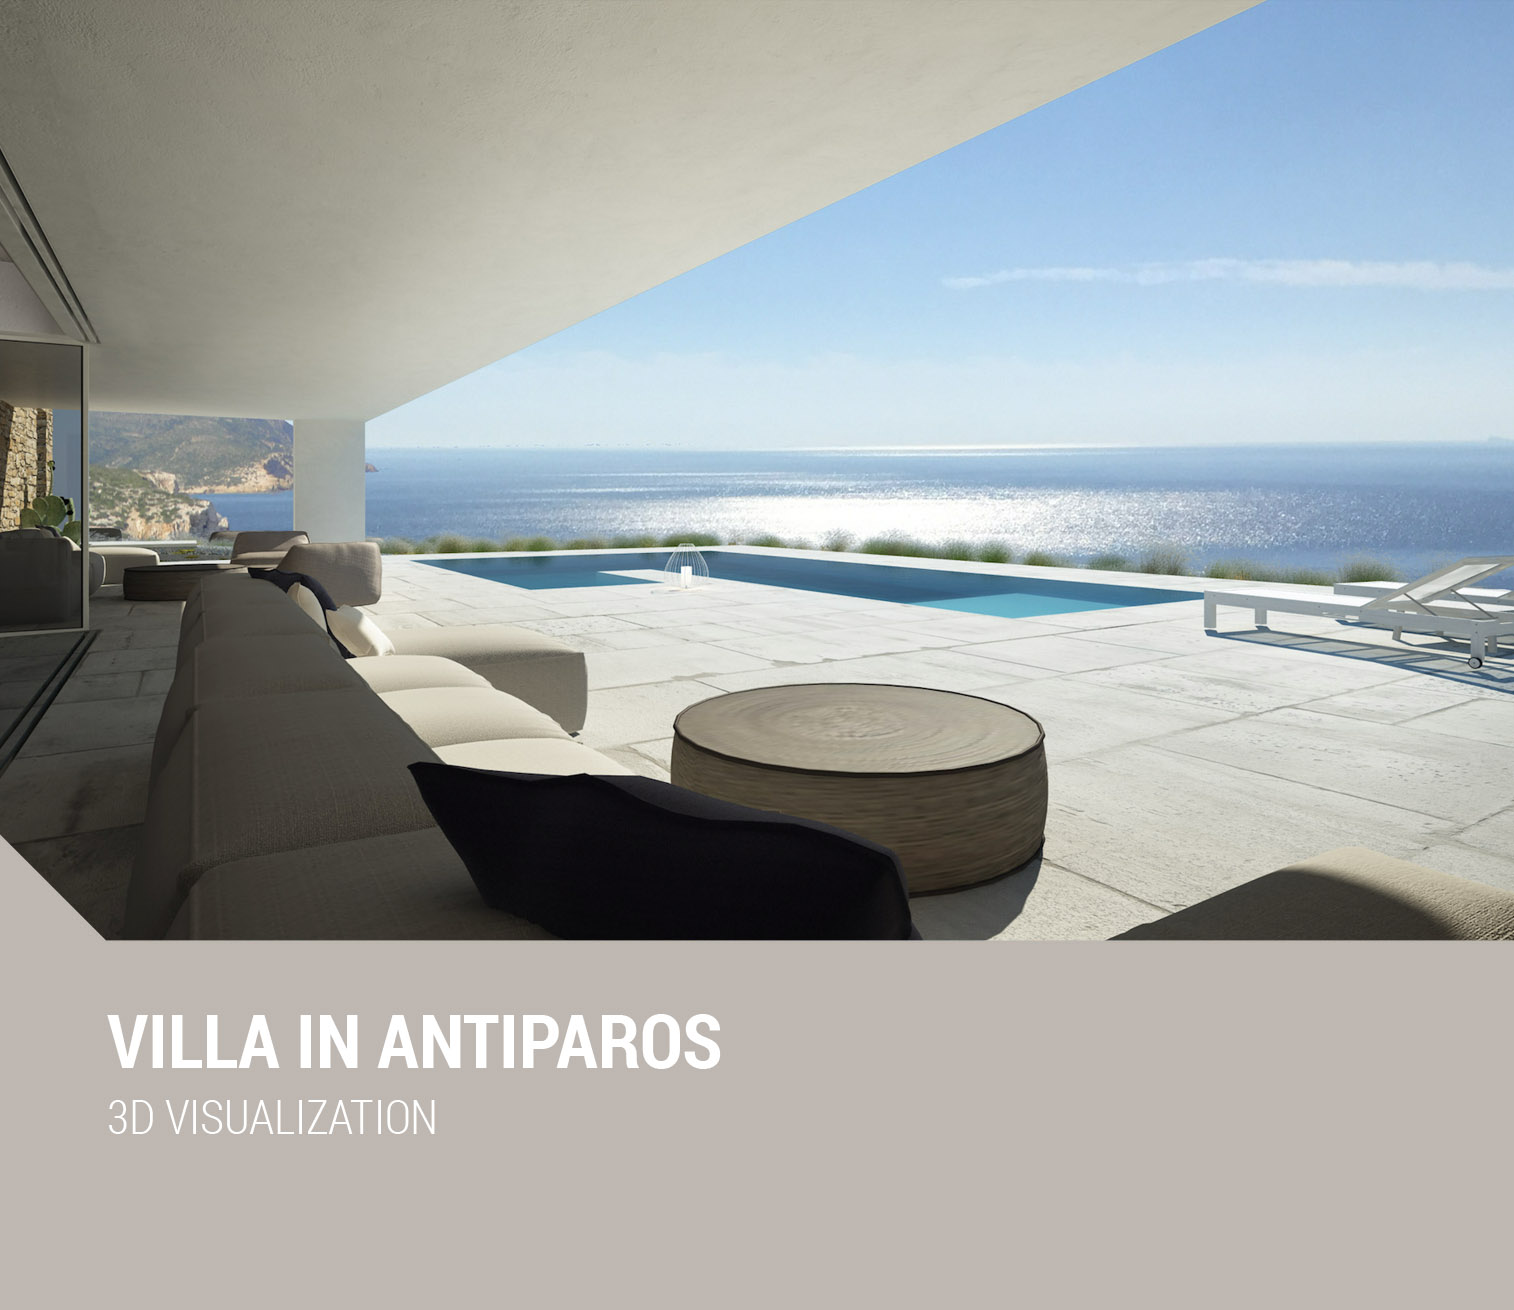 Schema Dimitra Chrona designer, creative director, architectural, 3D visualization, 3D Rendering, branding websites, digital, graphic design, interior design, real estate, luxury property, staging, museum, virtual, art, brochures, exhibitions, logotype, logo, Canada Quebec Montreal Athens Greece schema design a35 invitation small.jpg